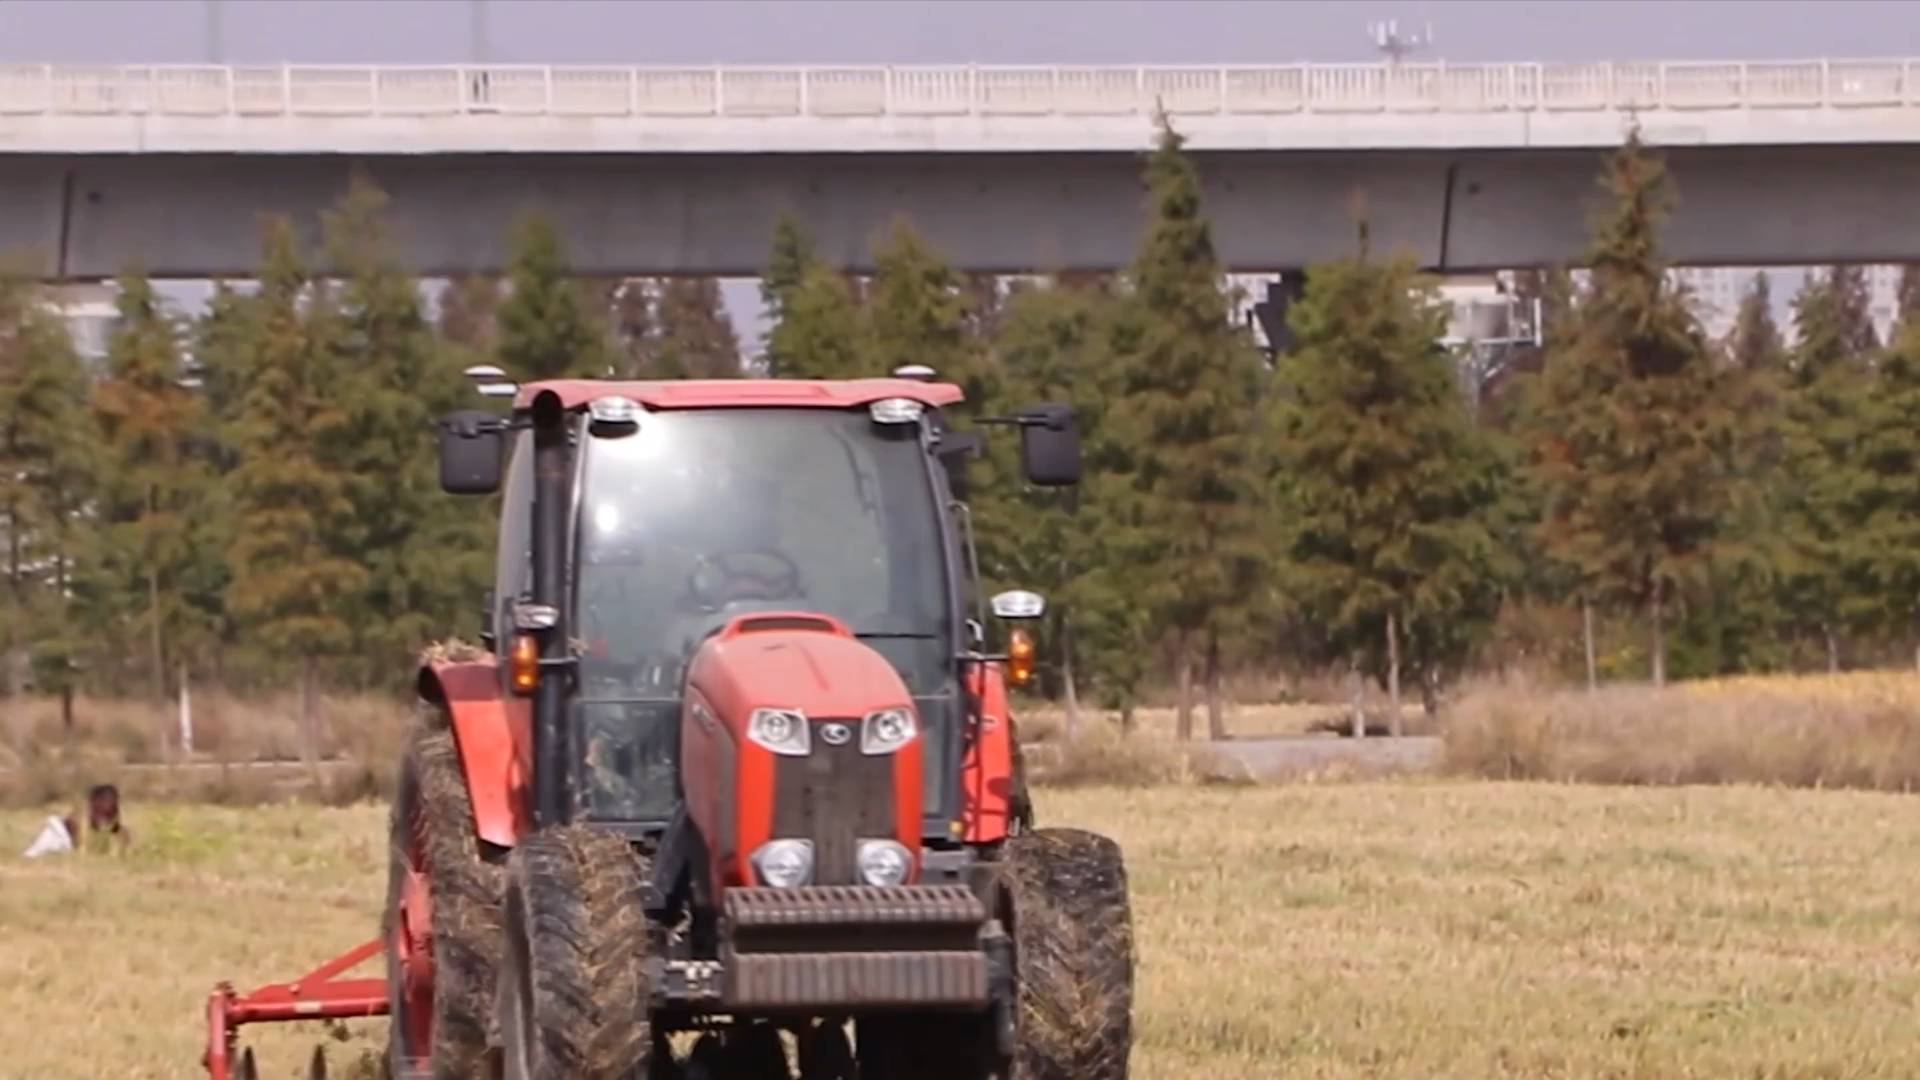 Shanghai starts testing its first unmanned farm